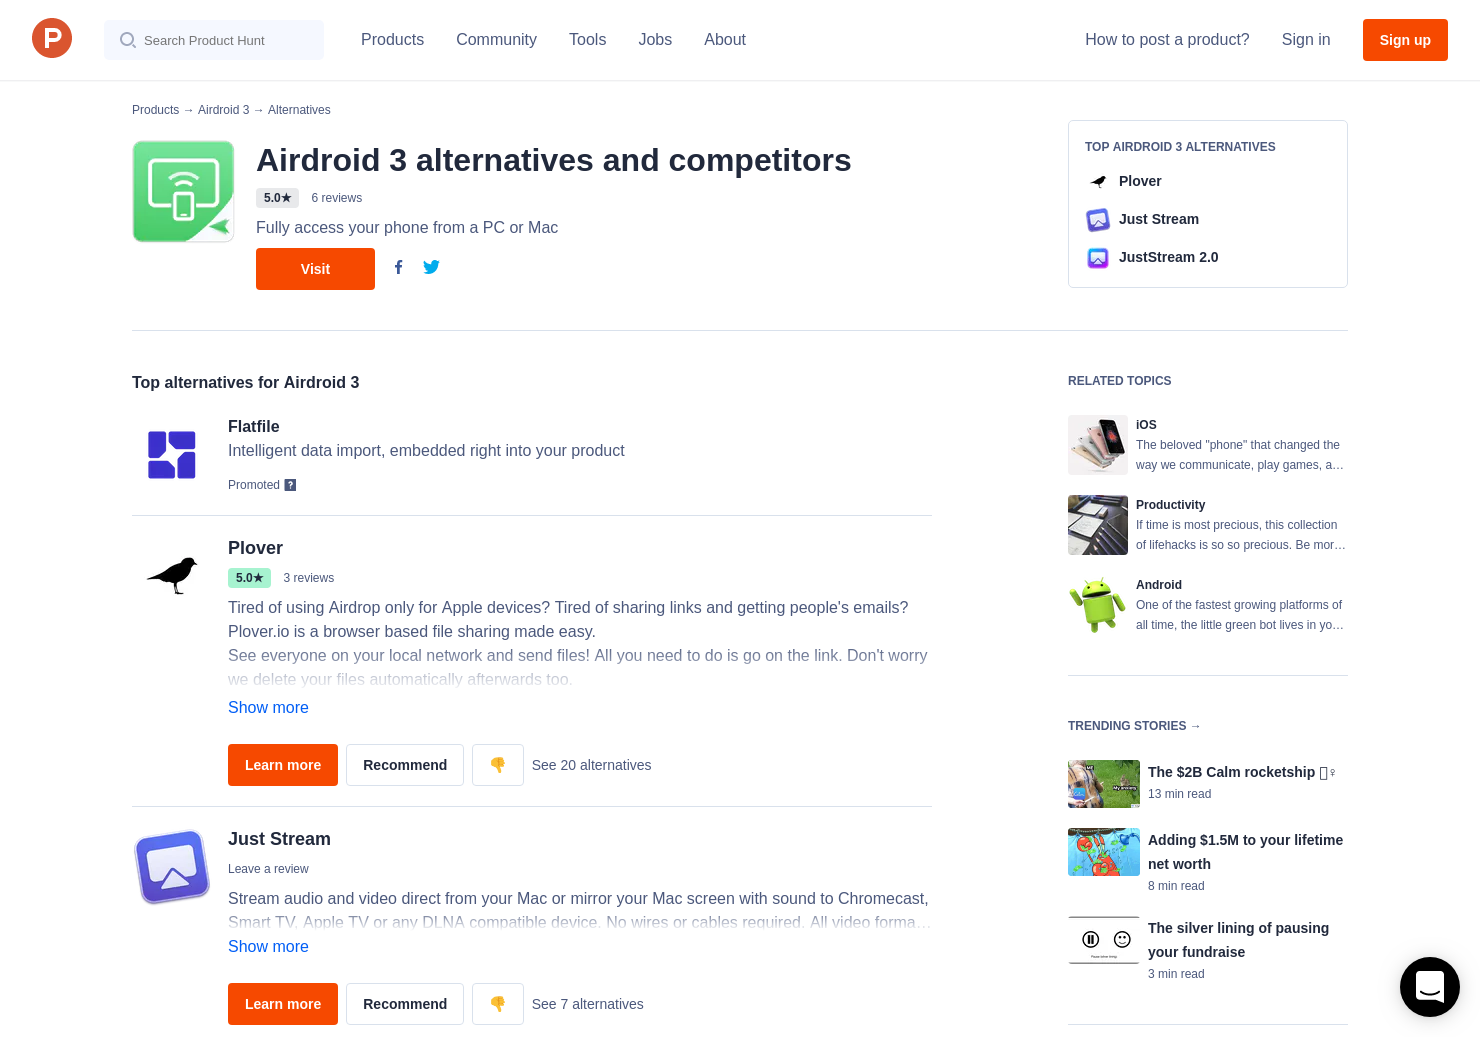 2 Alternatives To Airdroid 3 For Android Product Hunt